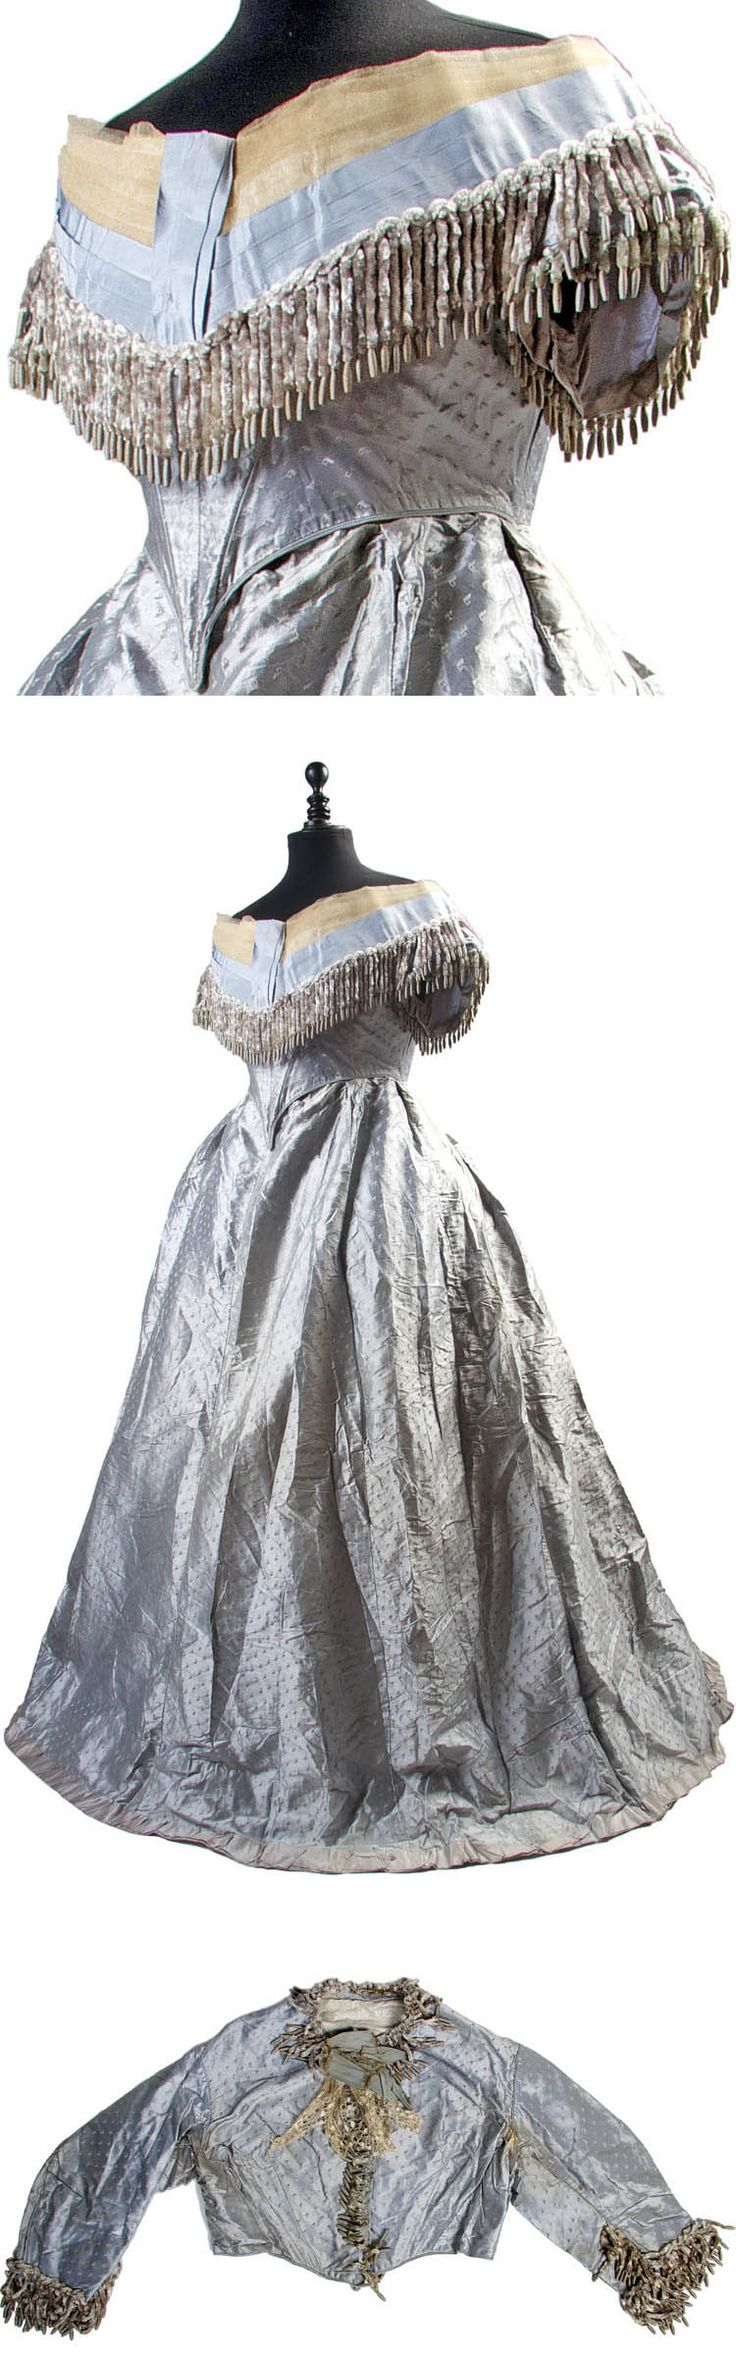 Three-piece dress ca. 1860s. Ice blue damask silk with day bodice, evening bodice, & skirt. Day bodice has long sleeves and high rounded neckline & is trimmed with chenille fringe. Evening bodice has short, capped sleeves, wide neckline, and deeply pointed bodice and includes detached silk and net bertha trimmed with chenille. Full skirt trimmed with satin ribbon at hem. Bonham's